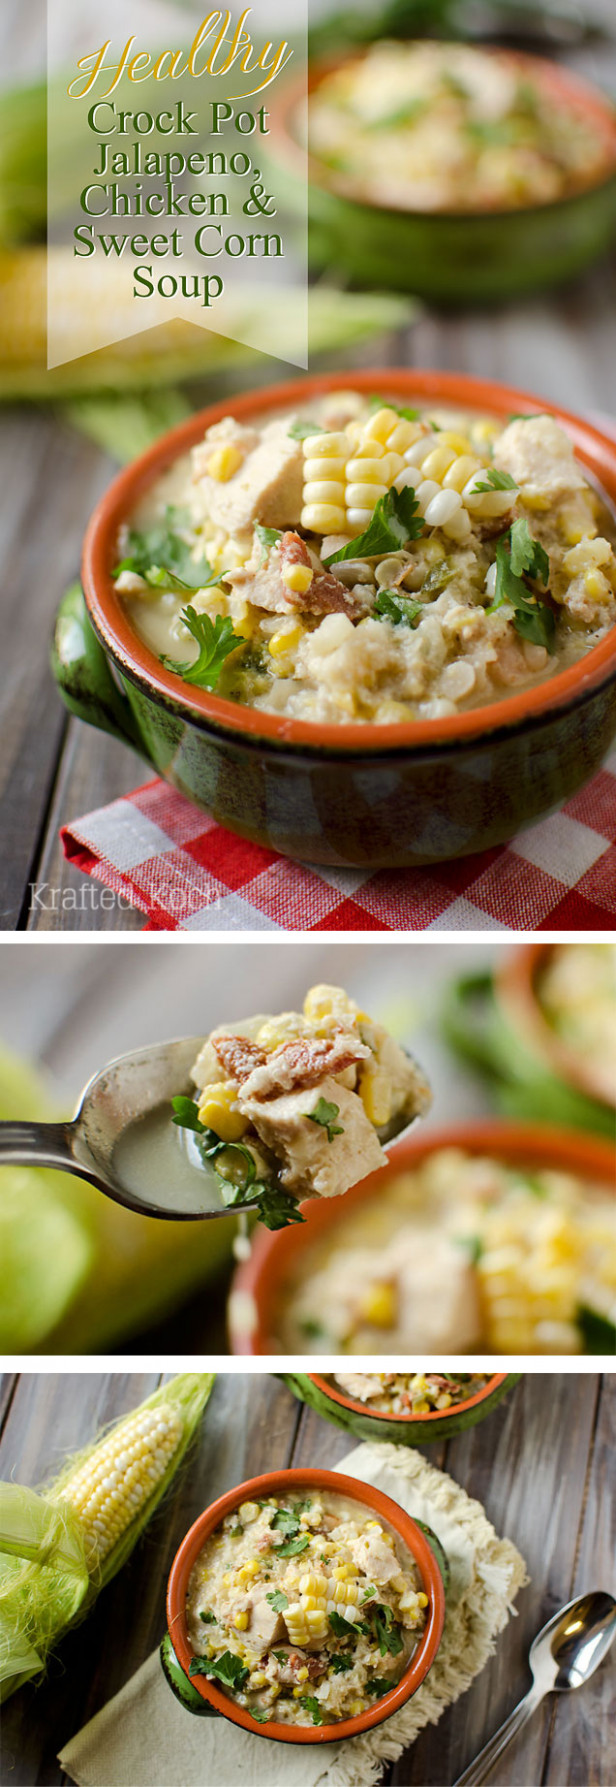 Healthy Crock Pot Jalapeno, Chicken & Sweet Corn Soup - recipes healthy crock pot